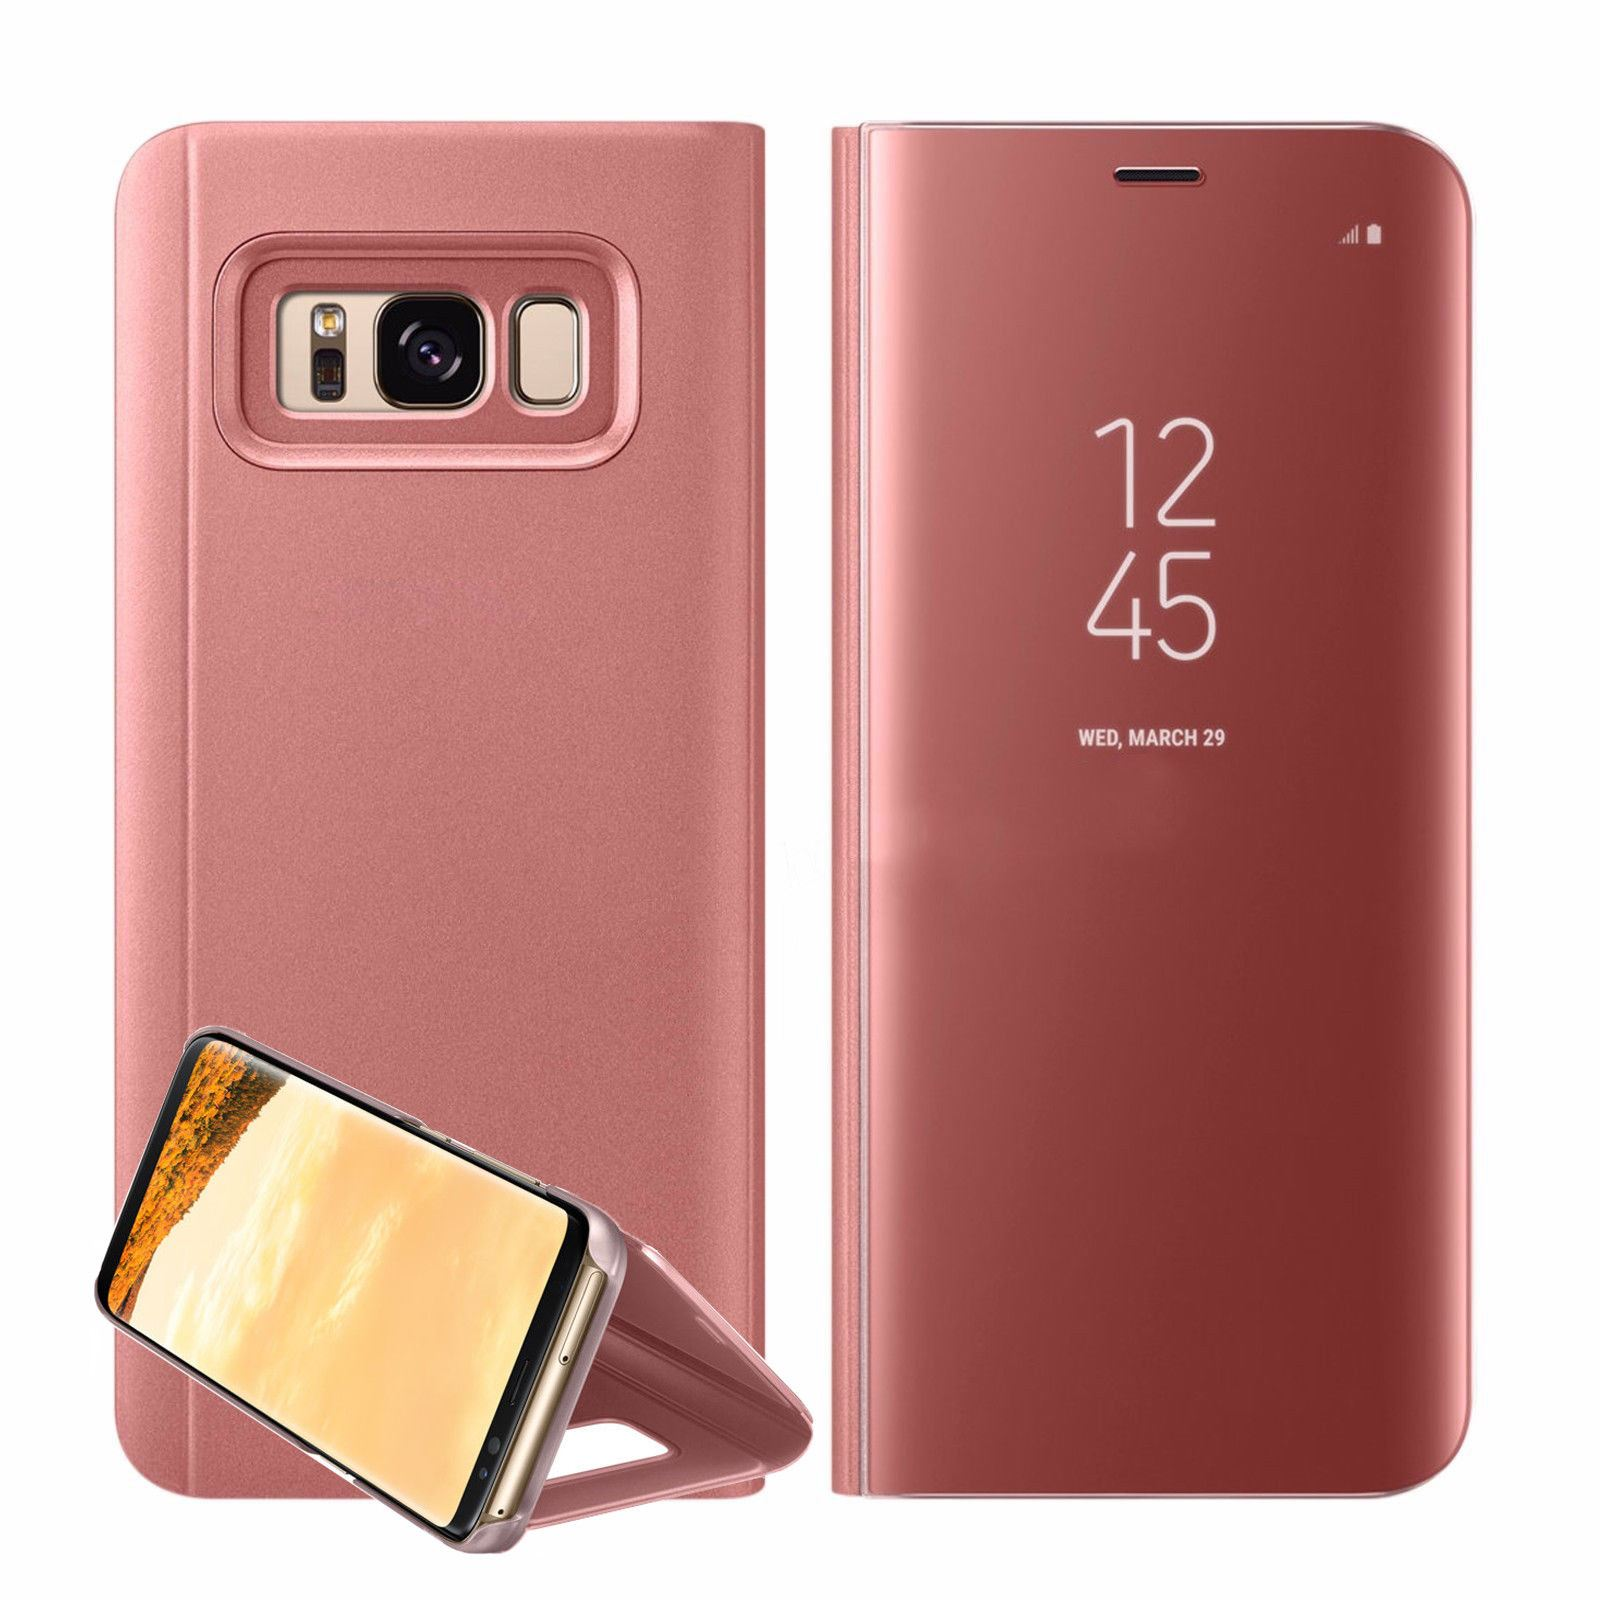 New-Samsung-Galaxy-S8-S9-S10-Smart-View-Mirror-Leather-Flip-Stand-Case-Cover miniatura 24